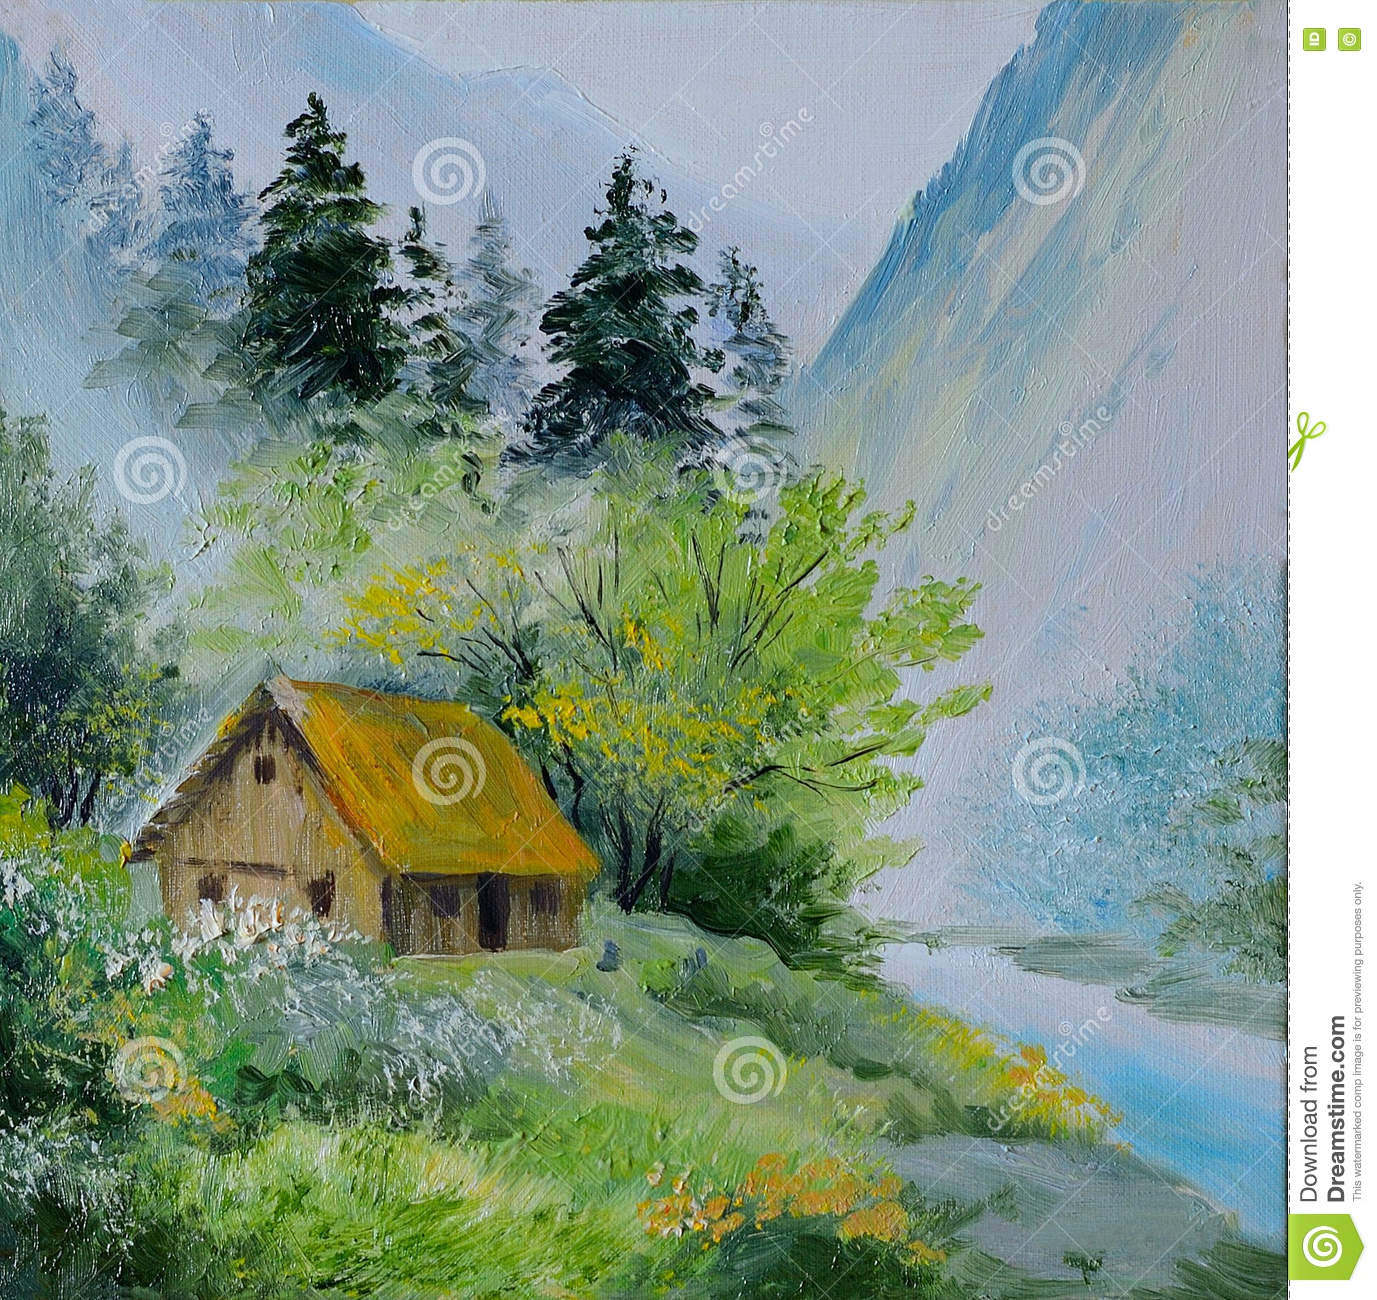 Oil painting - landscape in mountains, house in the mountains and forests near the bridge, abstract drawing, outdoor, wallpaper